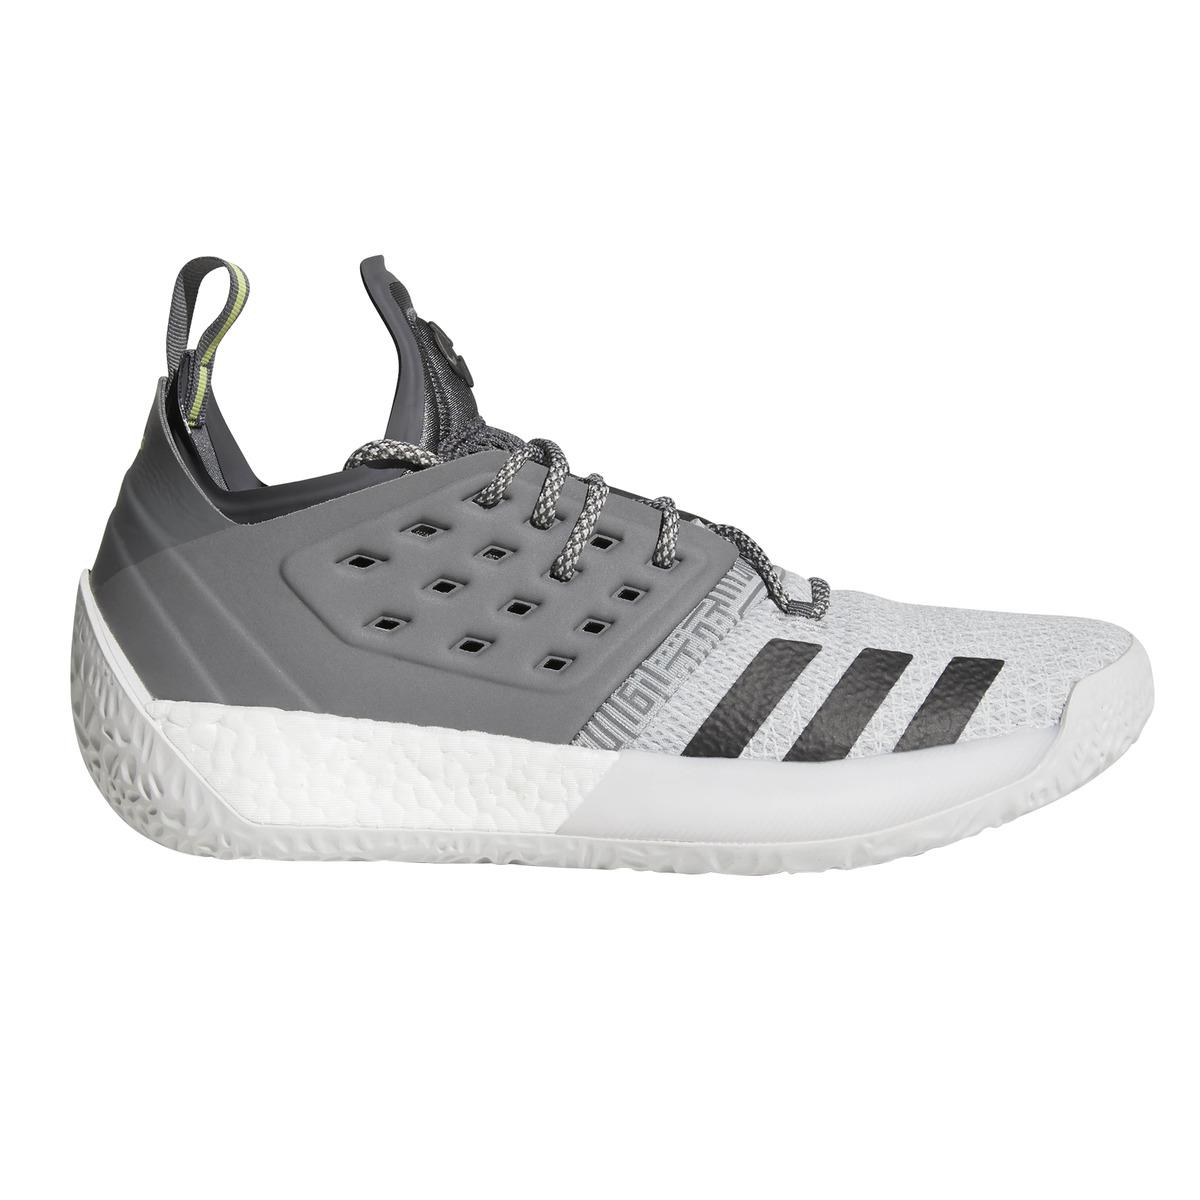 e52dcefdebb9f8 Adidas Harden Vol 2 Basketball Boots in Gray for Men - Lyst